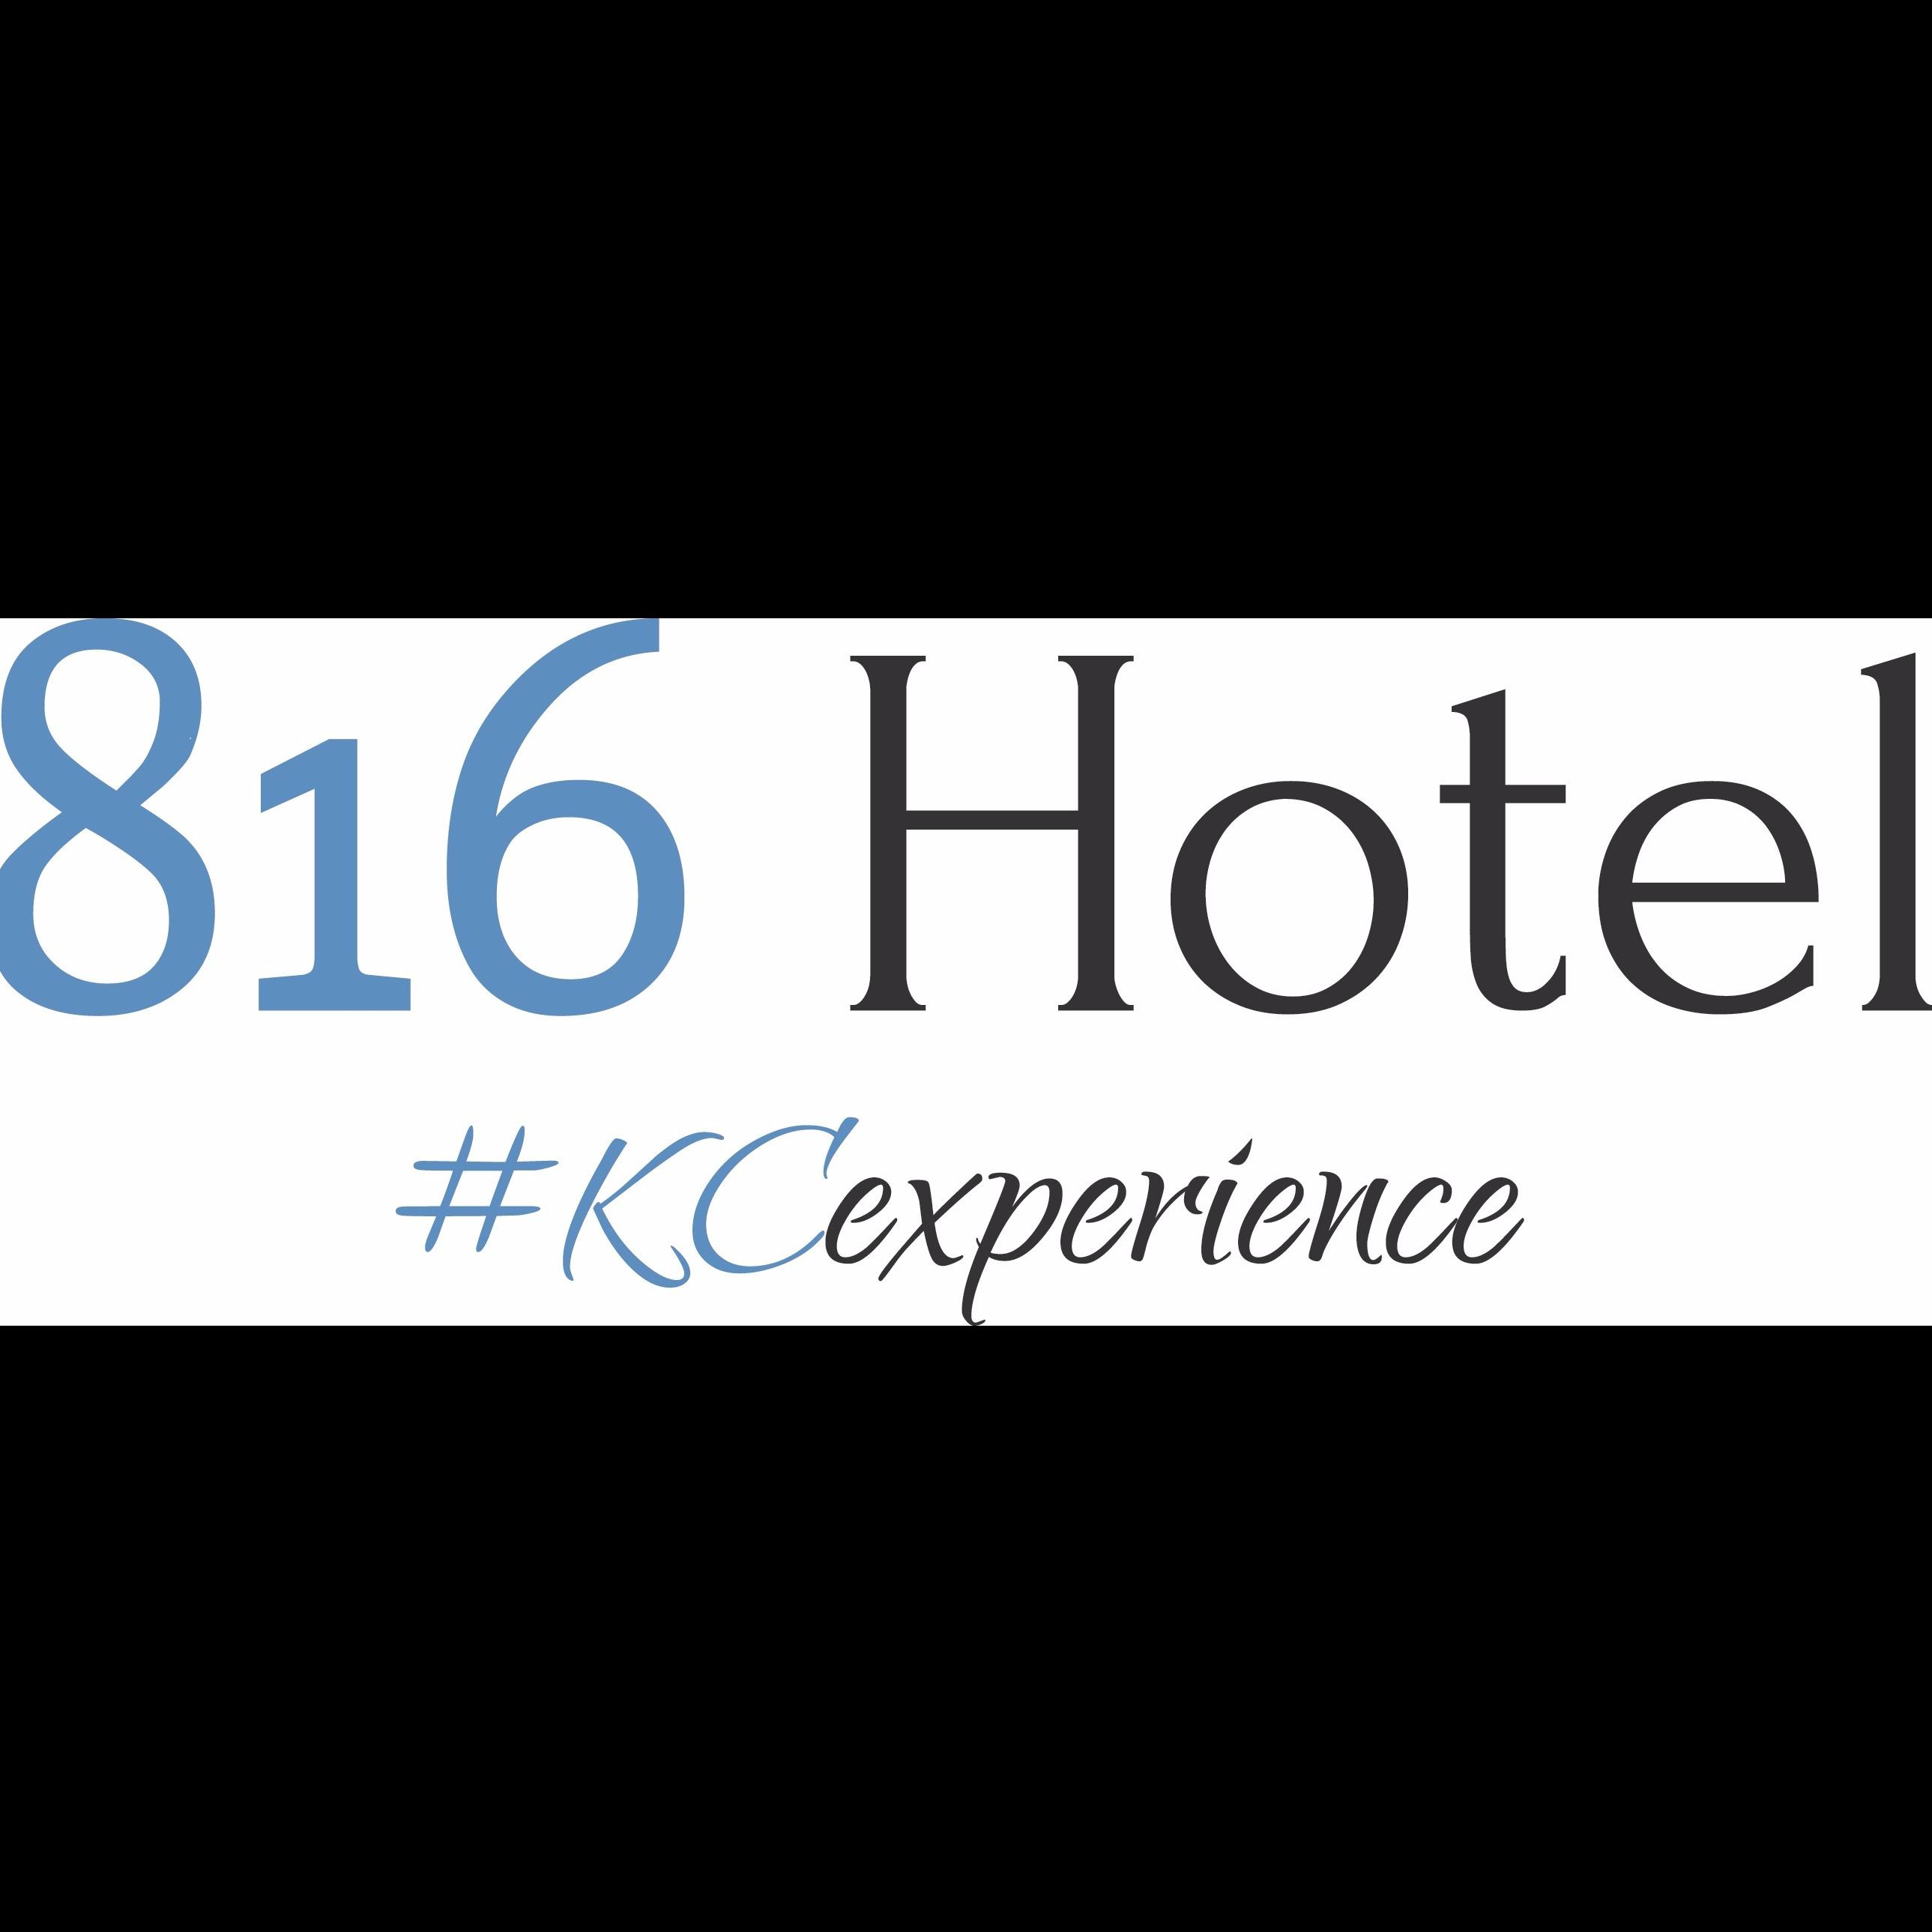 816 Hotel #KCexperience